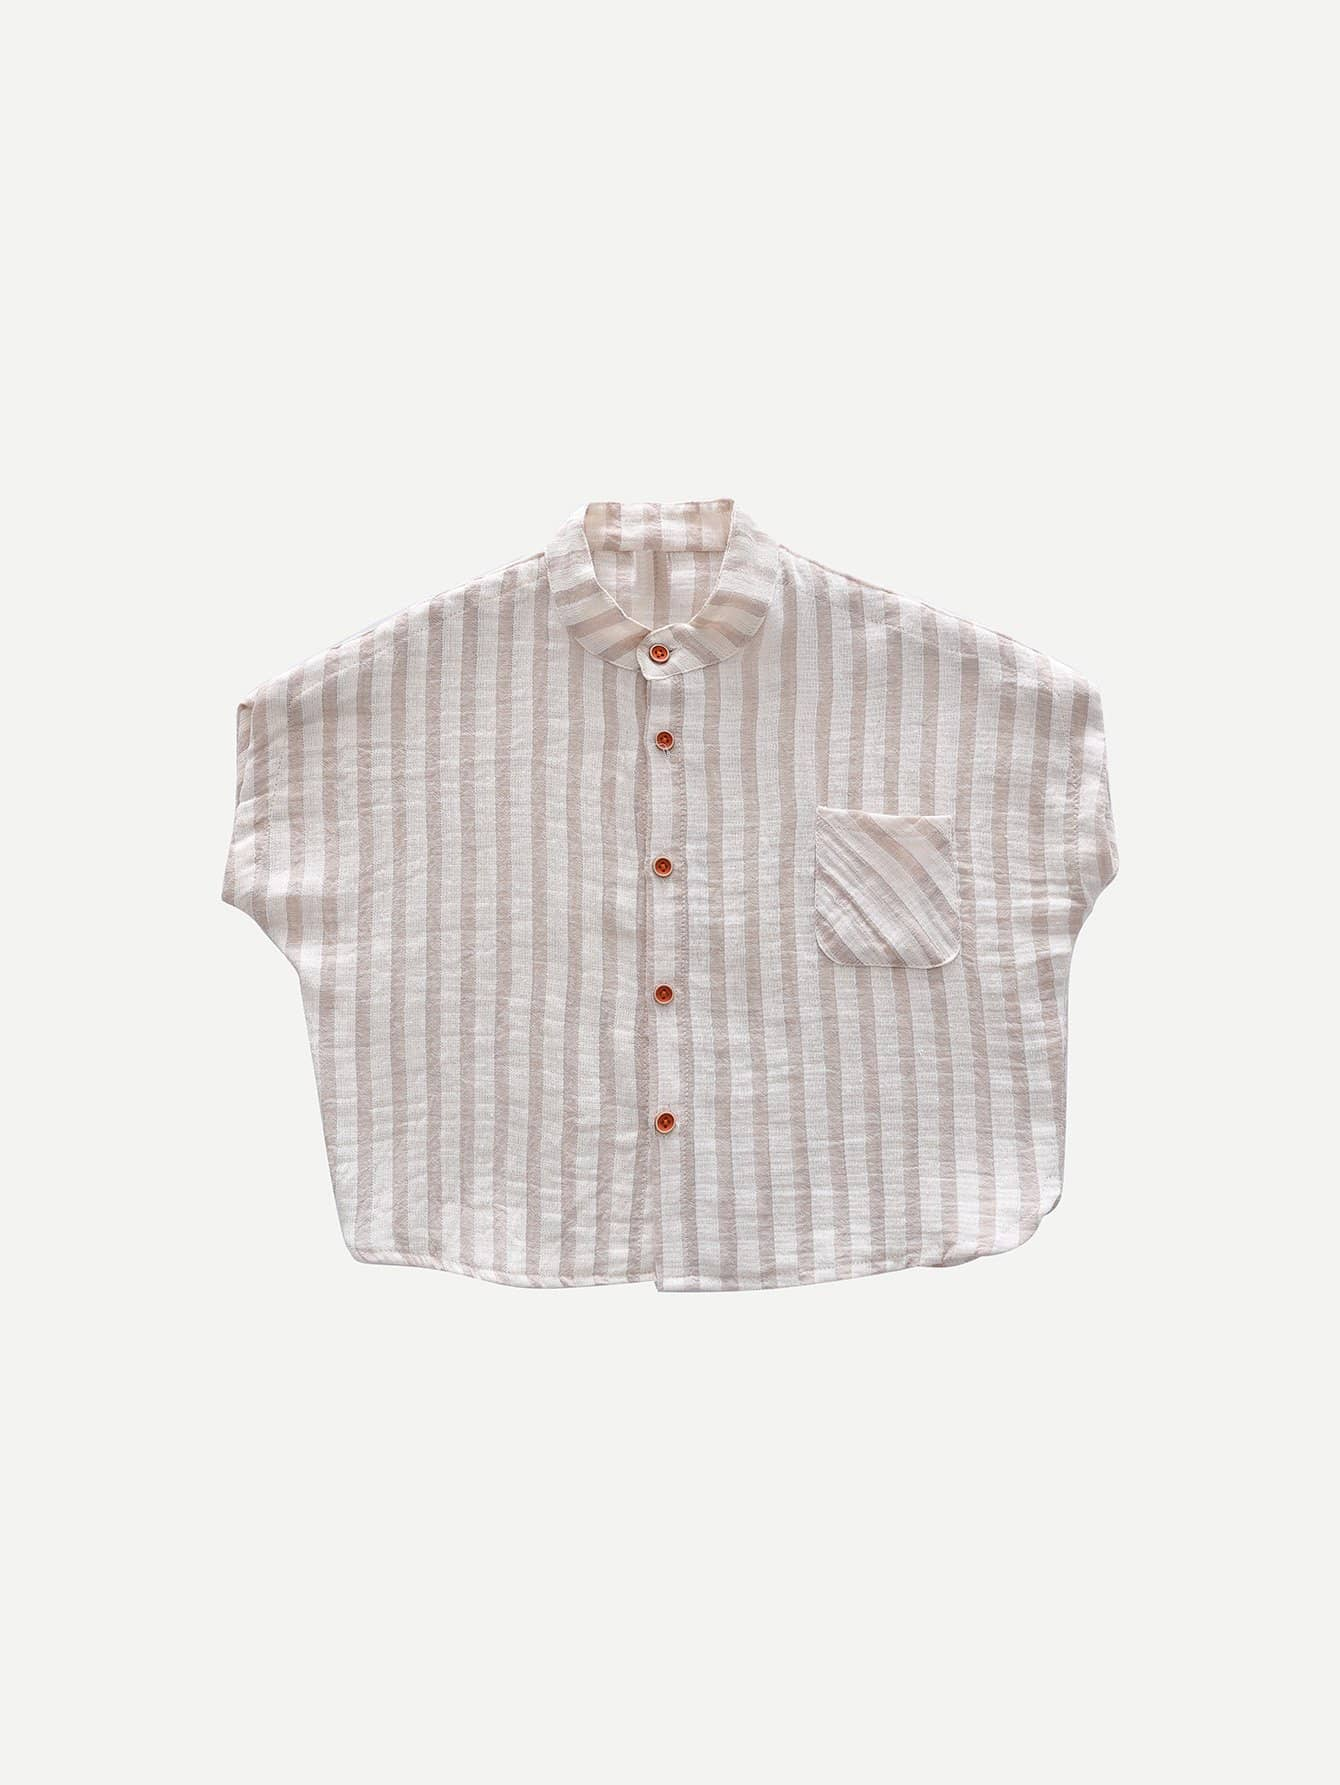 Фото - Girls Single Breasted Chest Pocket Striped Shirt striped knotted front cuffed shirt with chest pocket